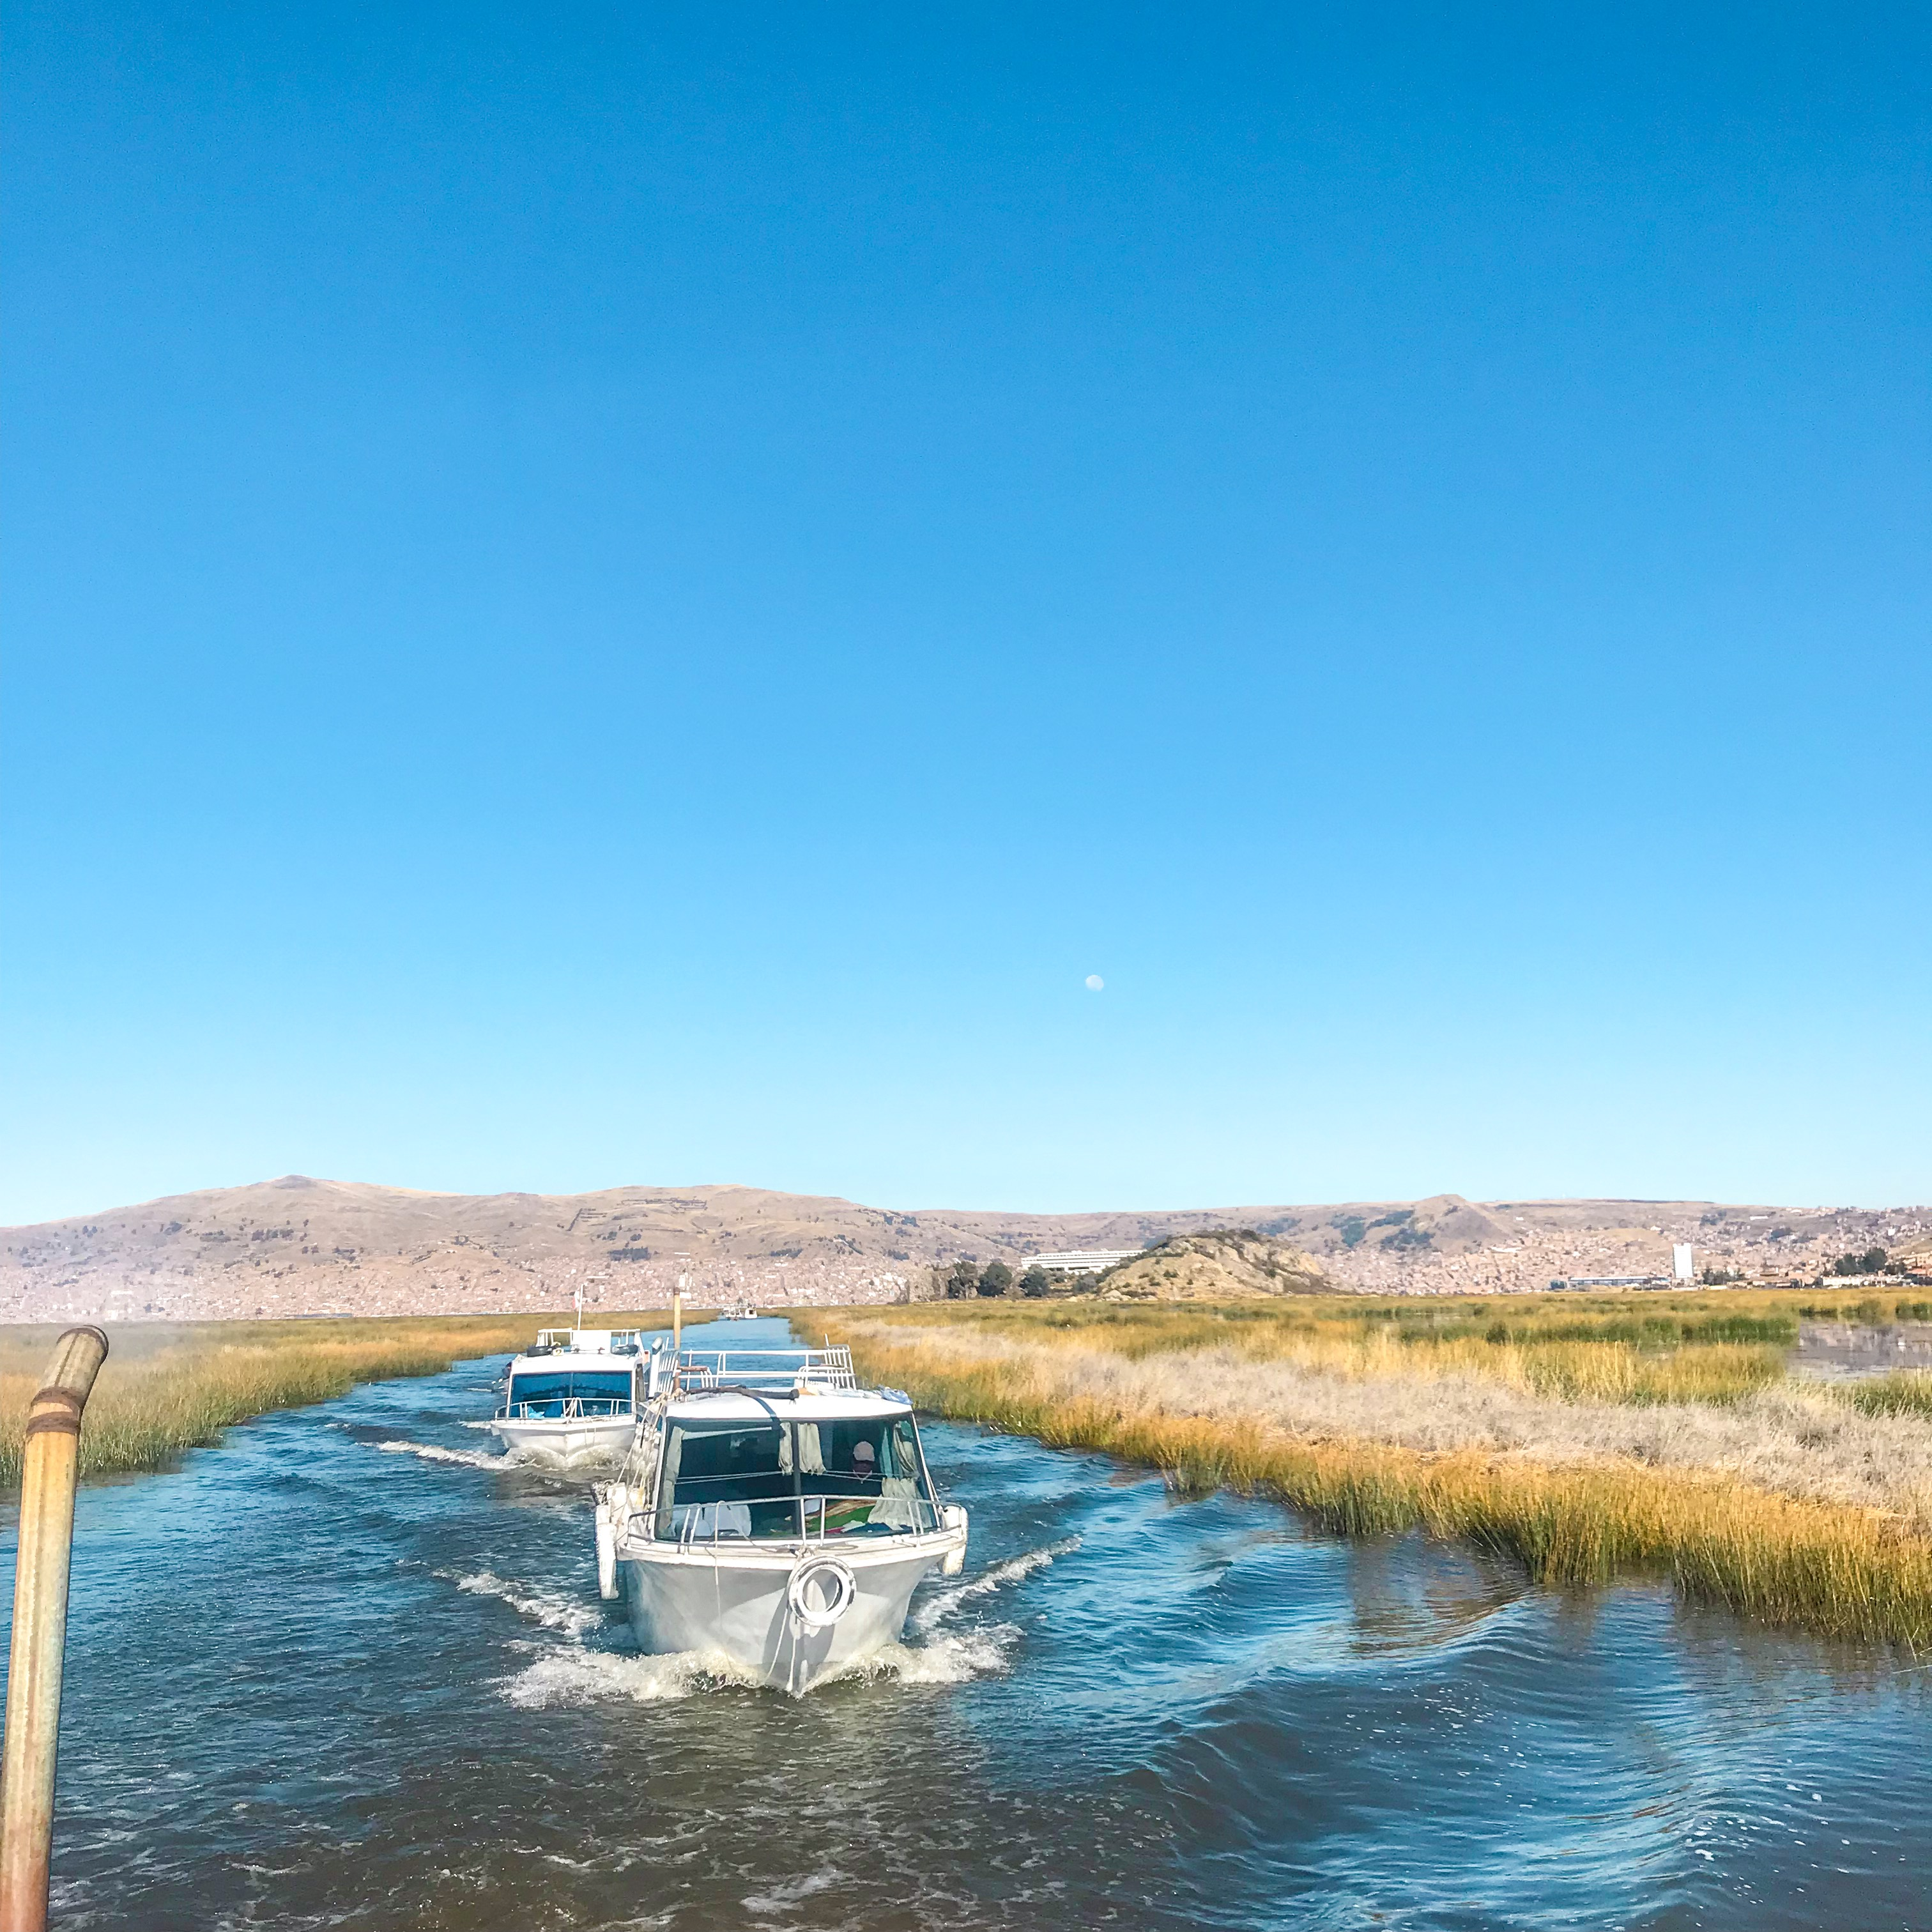 Boat tours on Lake Titicaca, Peru, taking tourists to the Uros Floating Islands through the reeds.